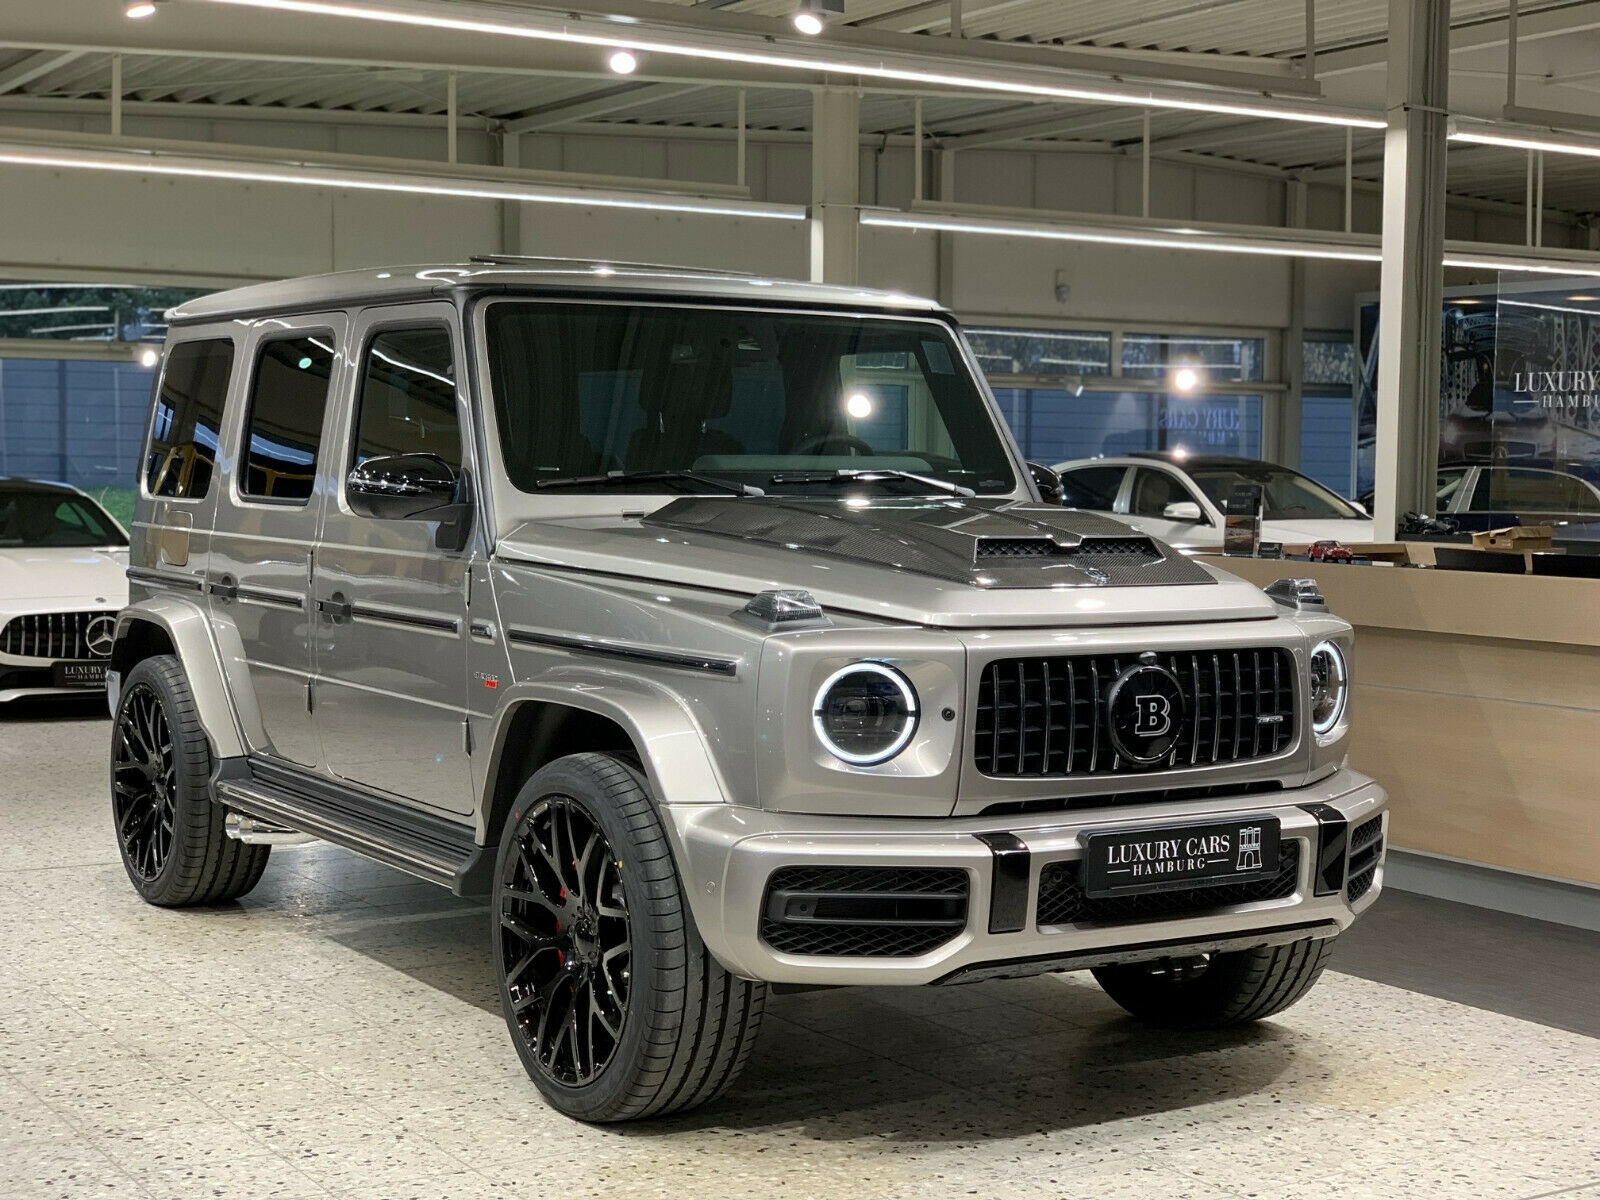 Mercedes Benz G 63 Amg 2019 Brabus G 700 Luxury Pulse Cars Germany For Sale On Luxurypulse